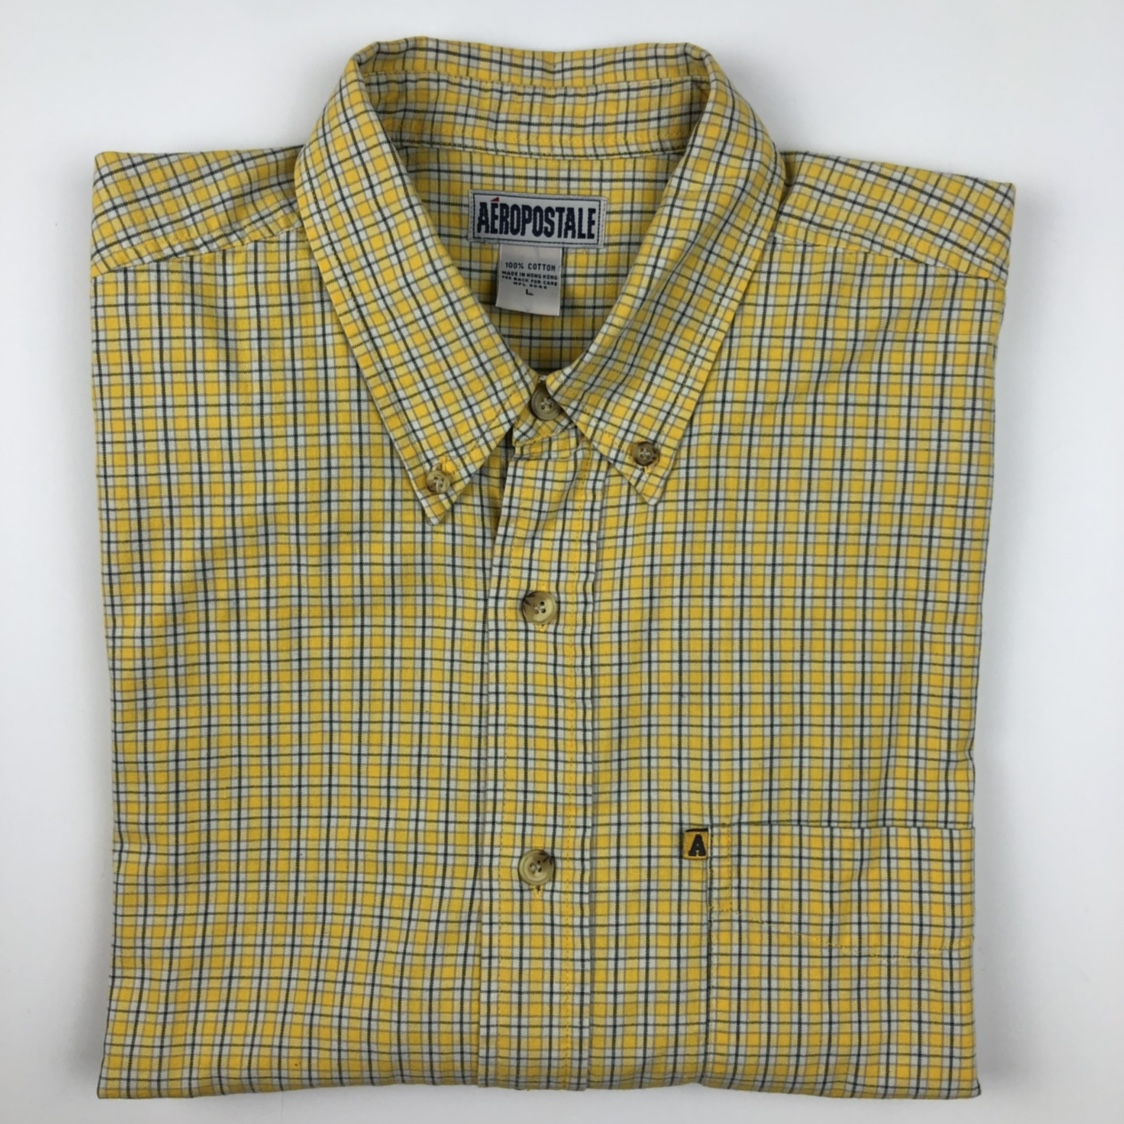 Product Image 1 - Aeropostale Long Sleeve Button Down